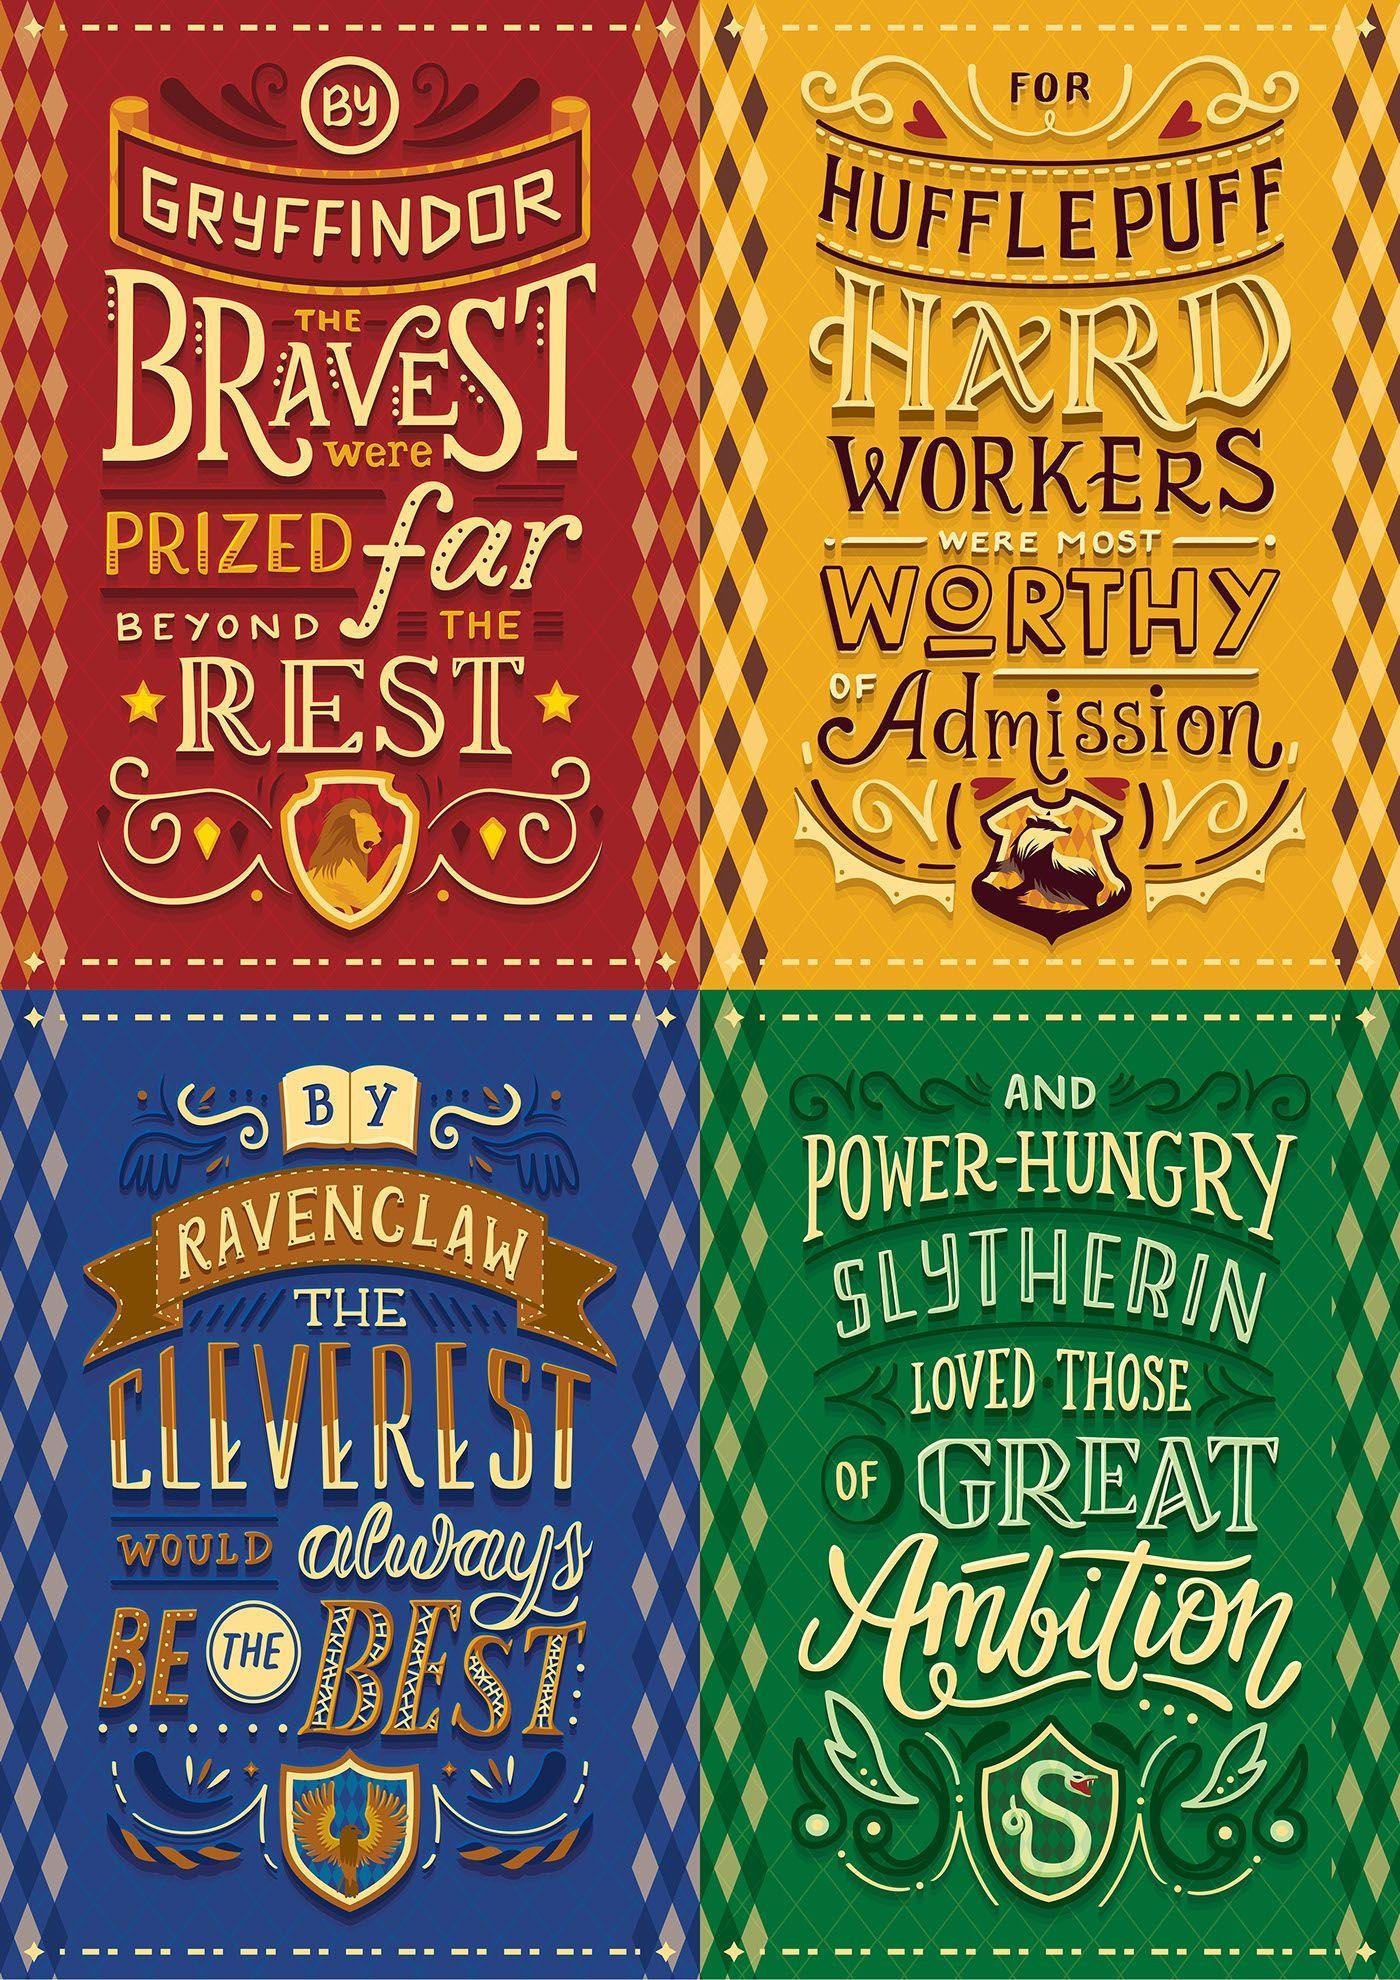 Which Hogwarts House are you in? (7)